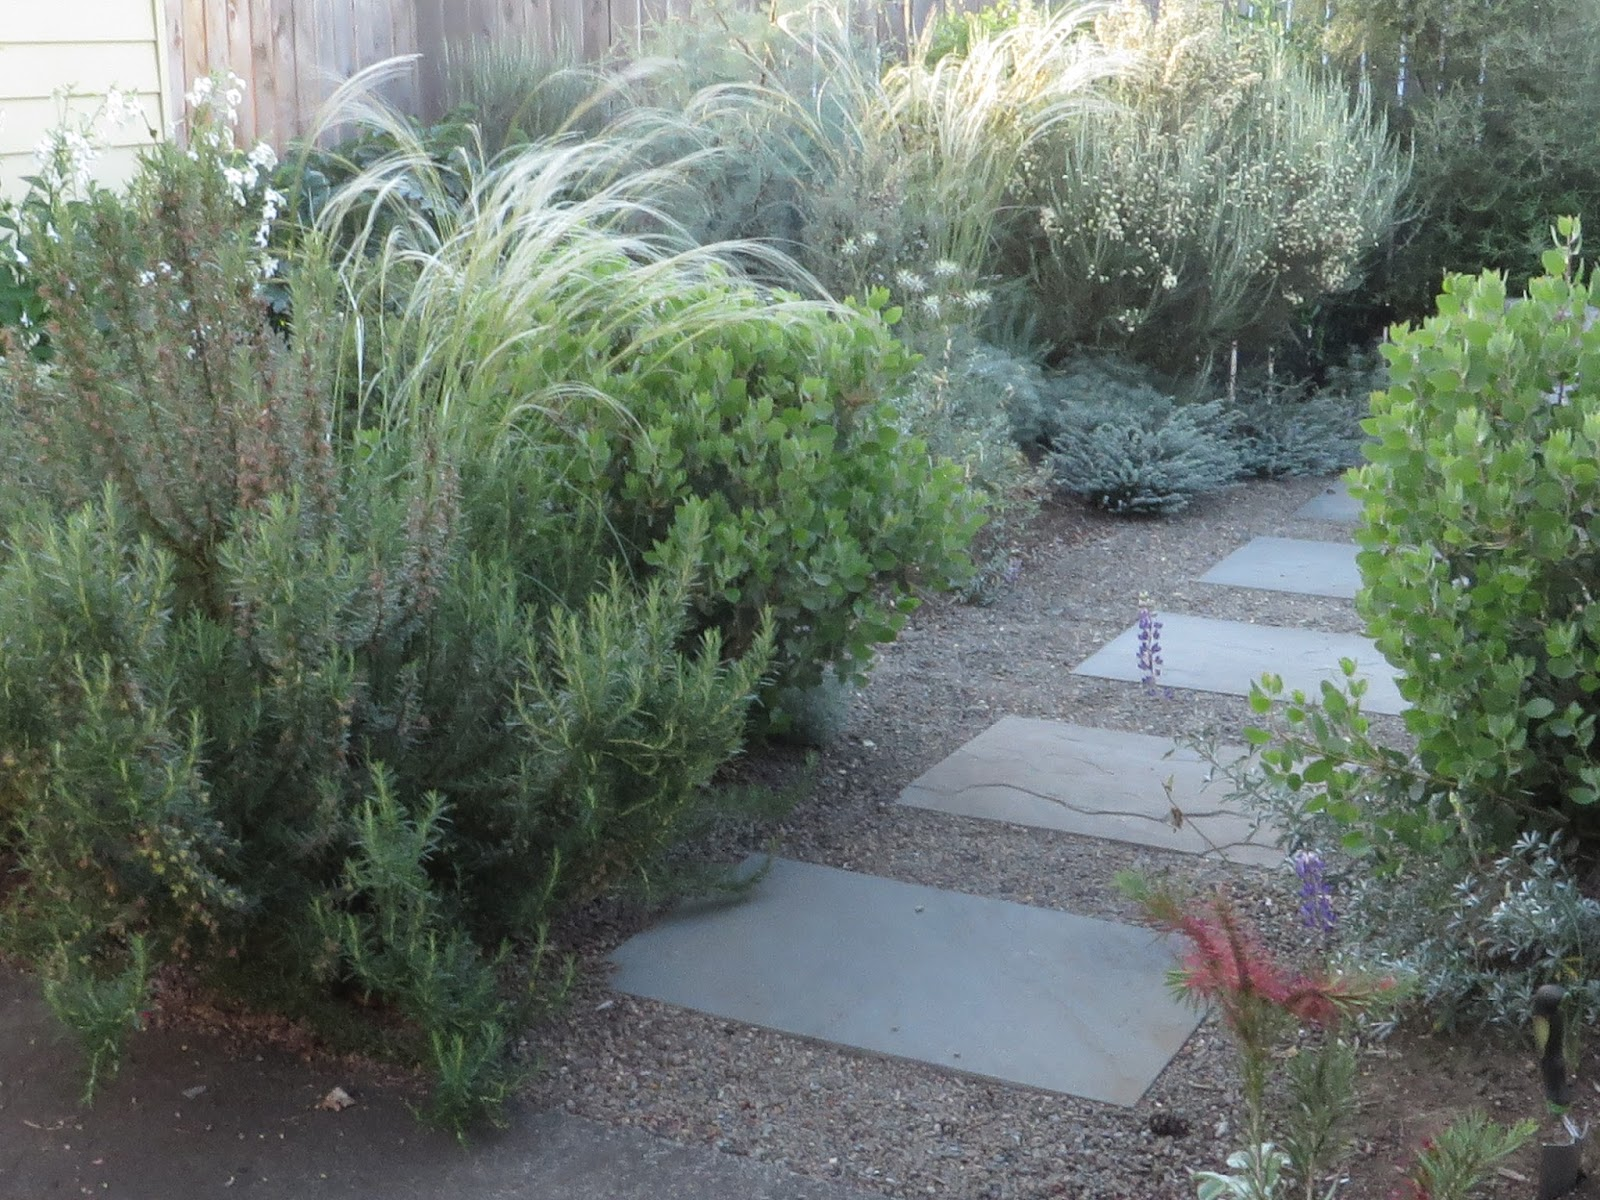 How to plant ground cover between pavers - Between The Rosemary And The Hebes In The Back There Are A Dozen Incredible Plants The Simplicity Of Design Works The Large Pavers Are